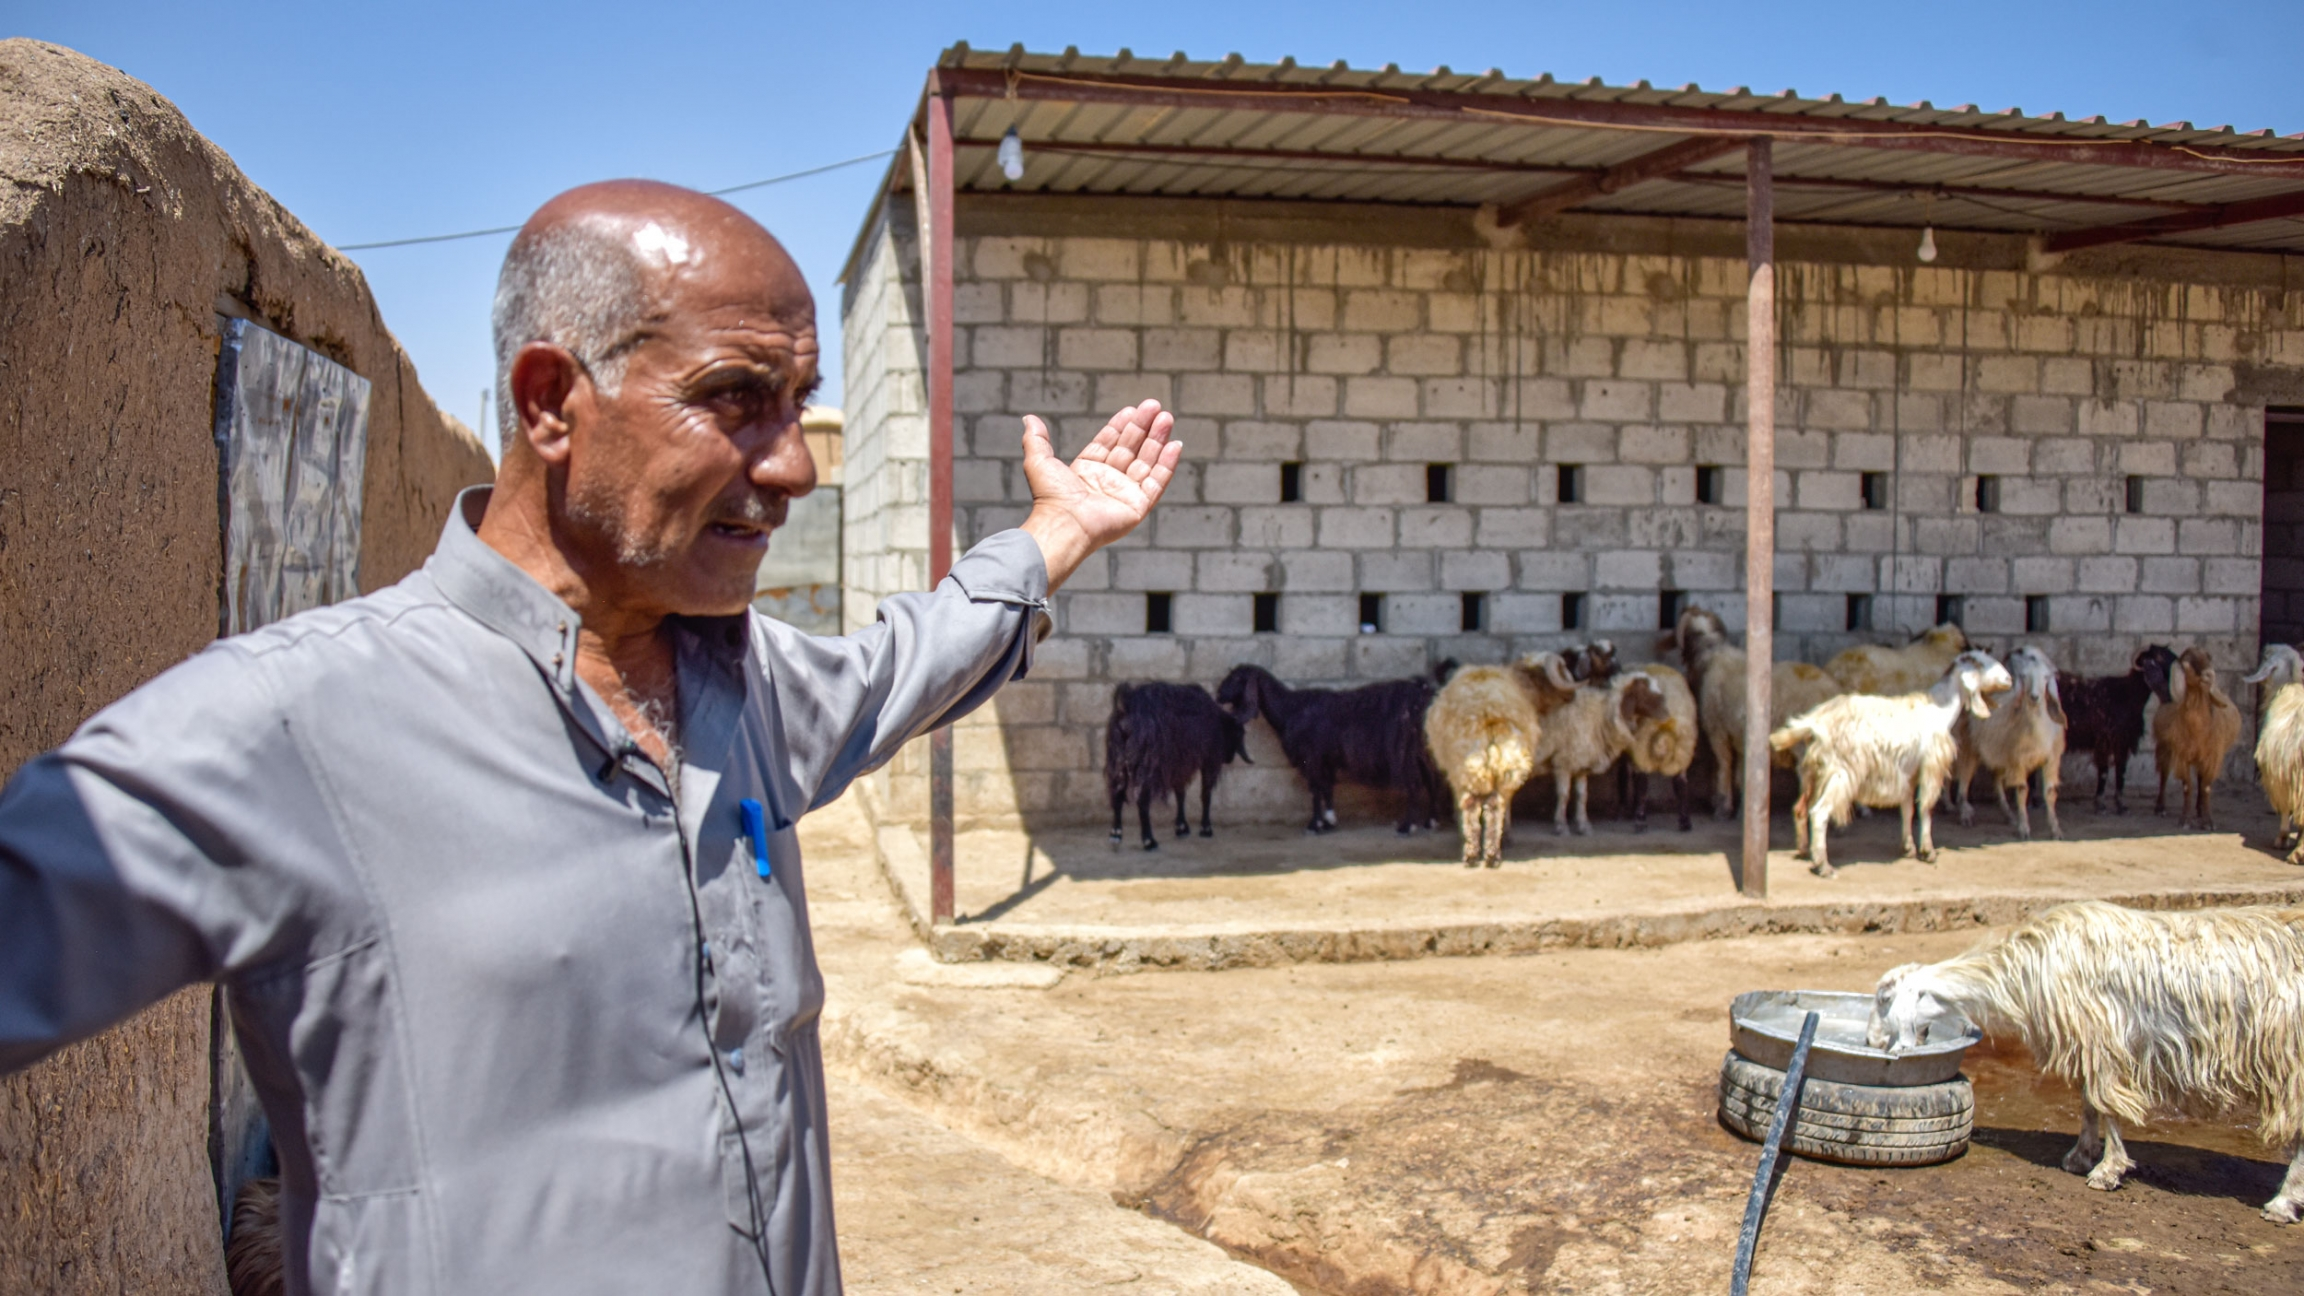 Yassin, a farmer from al-Sebat village in Rural Hasakah, standsin the yard where he keeps his livestock while explaining the catastrophic effects of drought on his life.